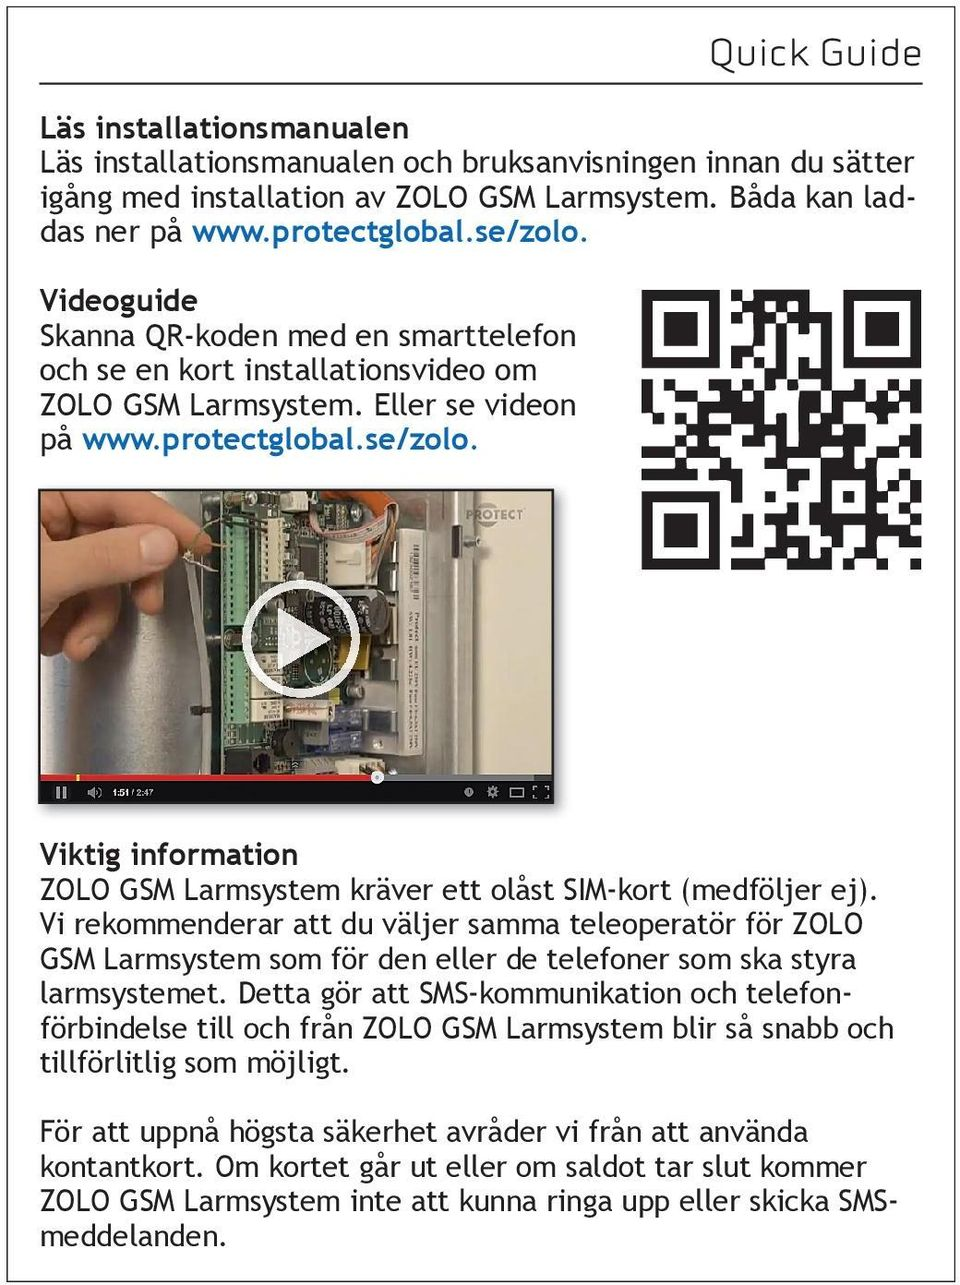 Quick Guide PROTECT ZOLO Installation Vi https://www.youtube.com/watch?v=6g5mrj0l http://kaywa.me/0dys0 Download the Kaywa QR Code Reader (App Store &Android Market) and scan your code!